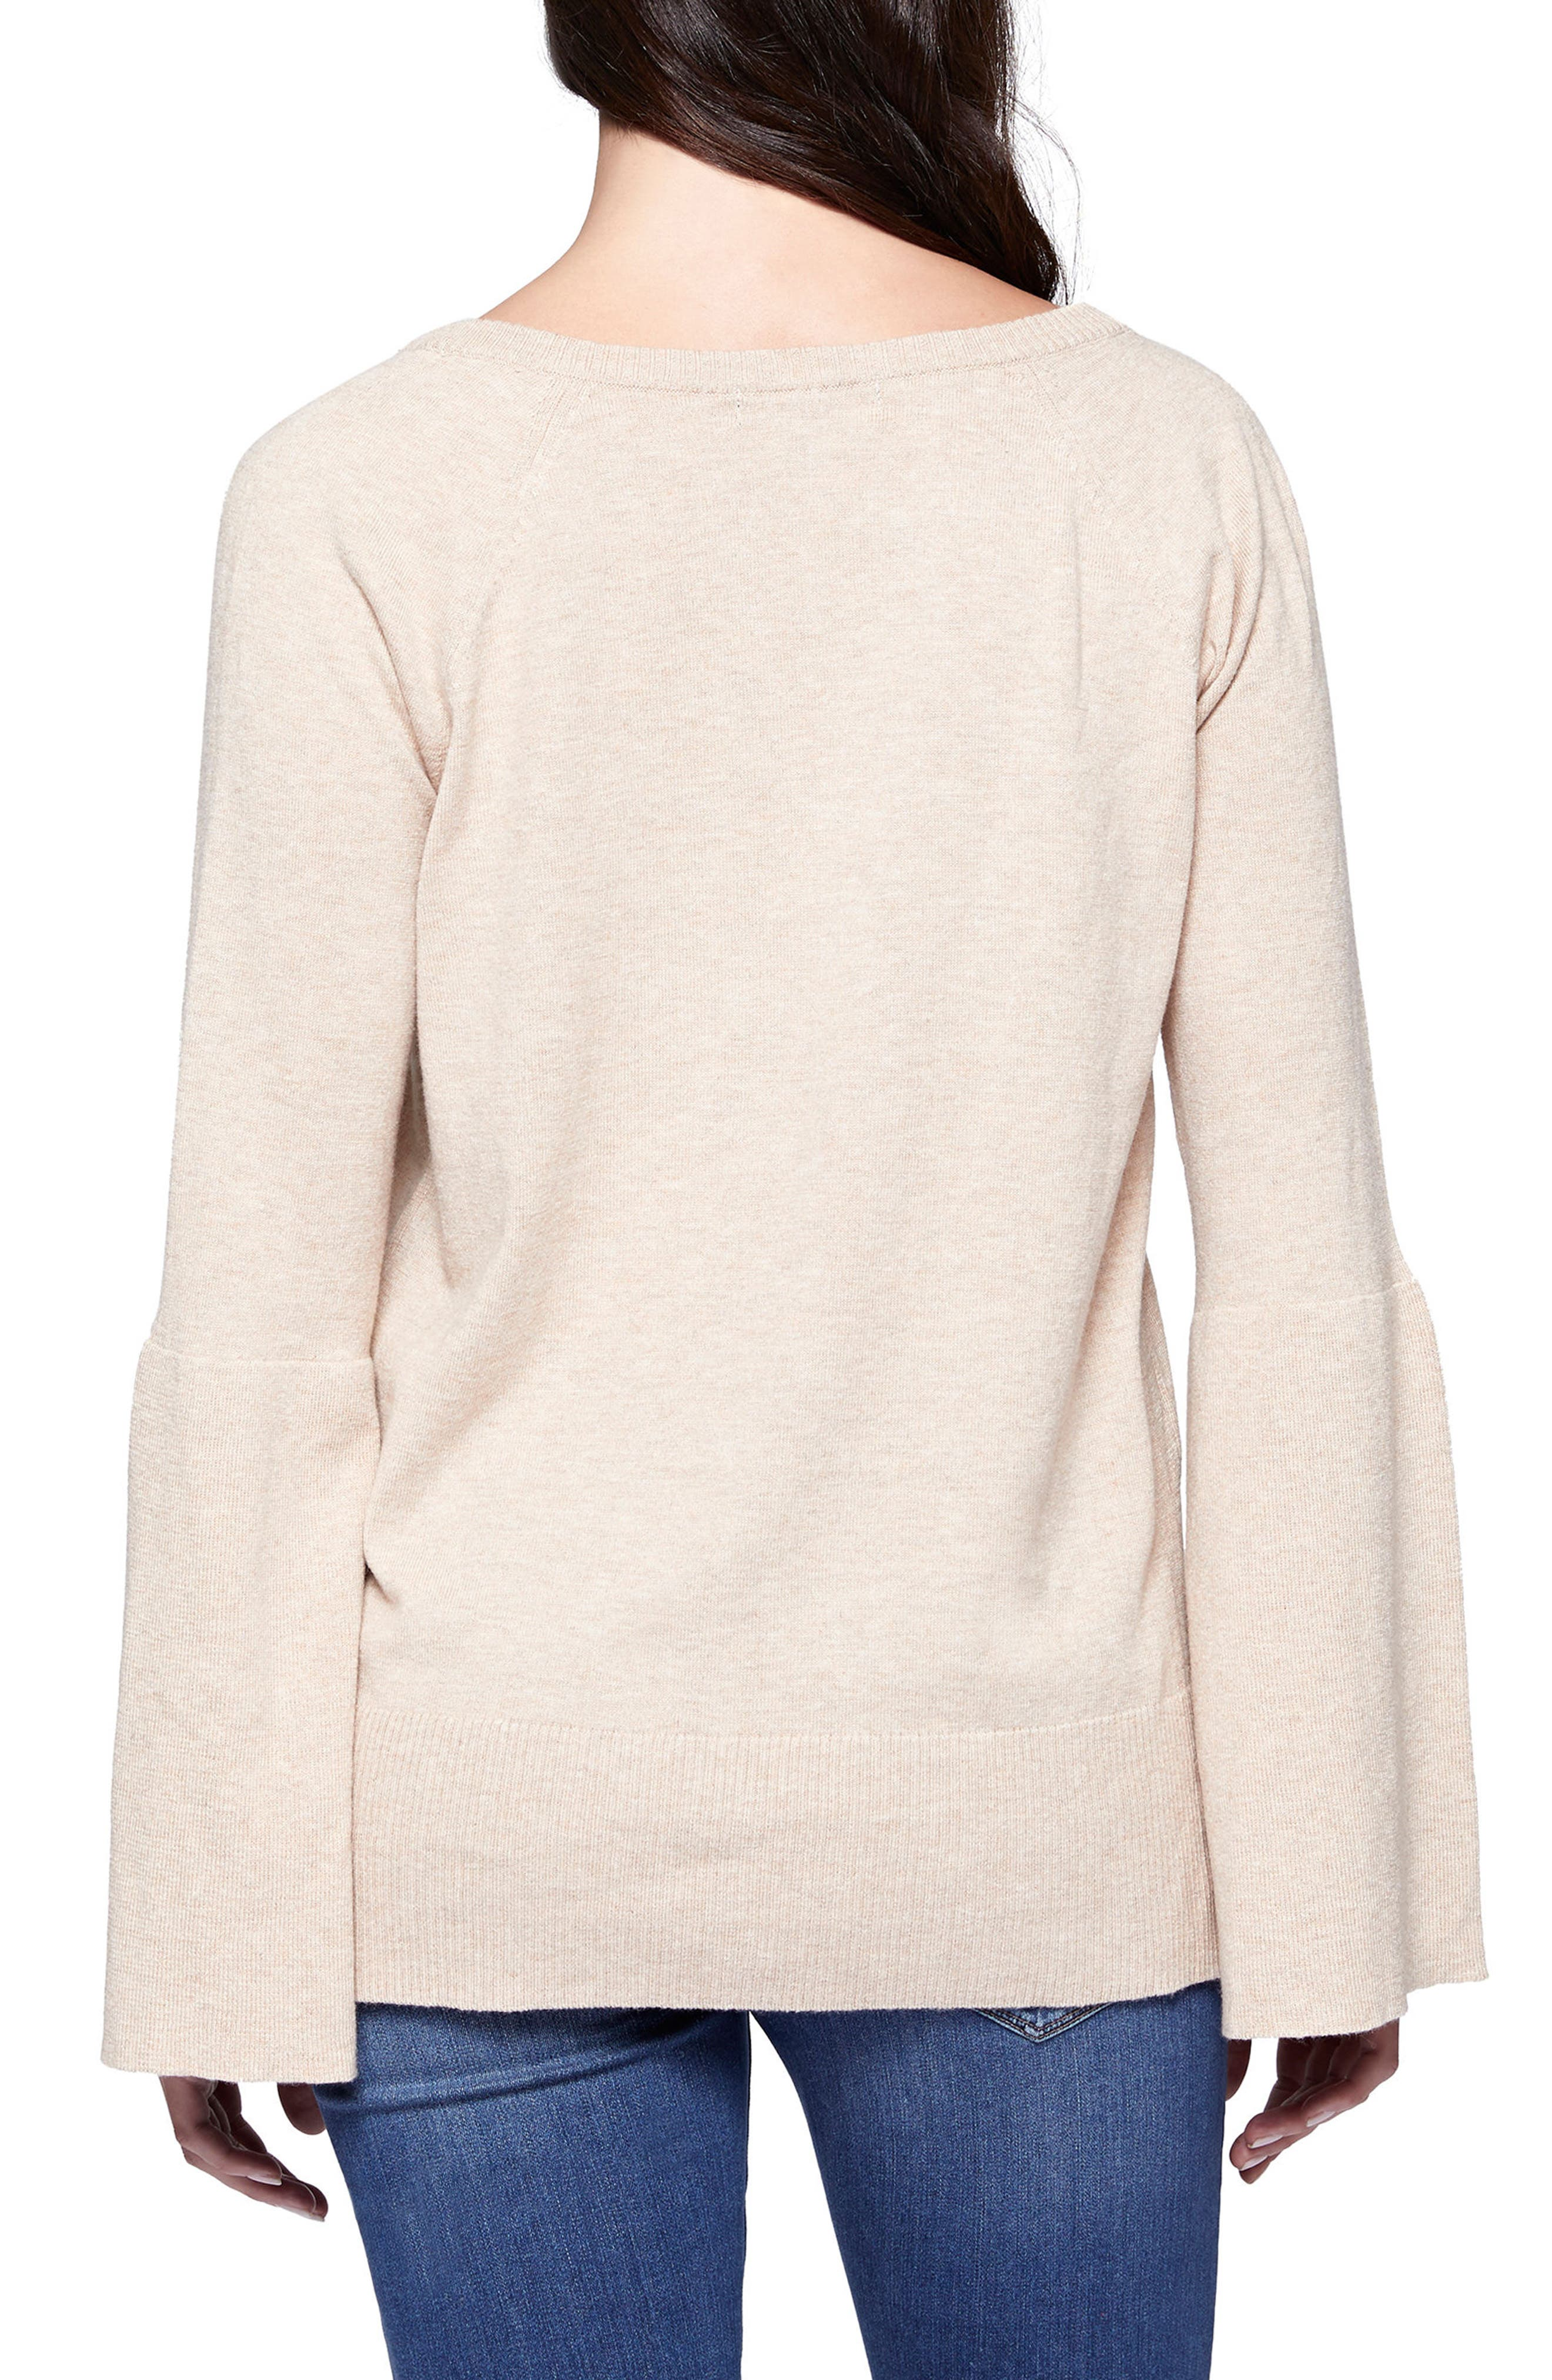 Bell Sleeve Sweater,                             Alternate thumbnail 2, color,                             253